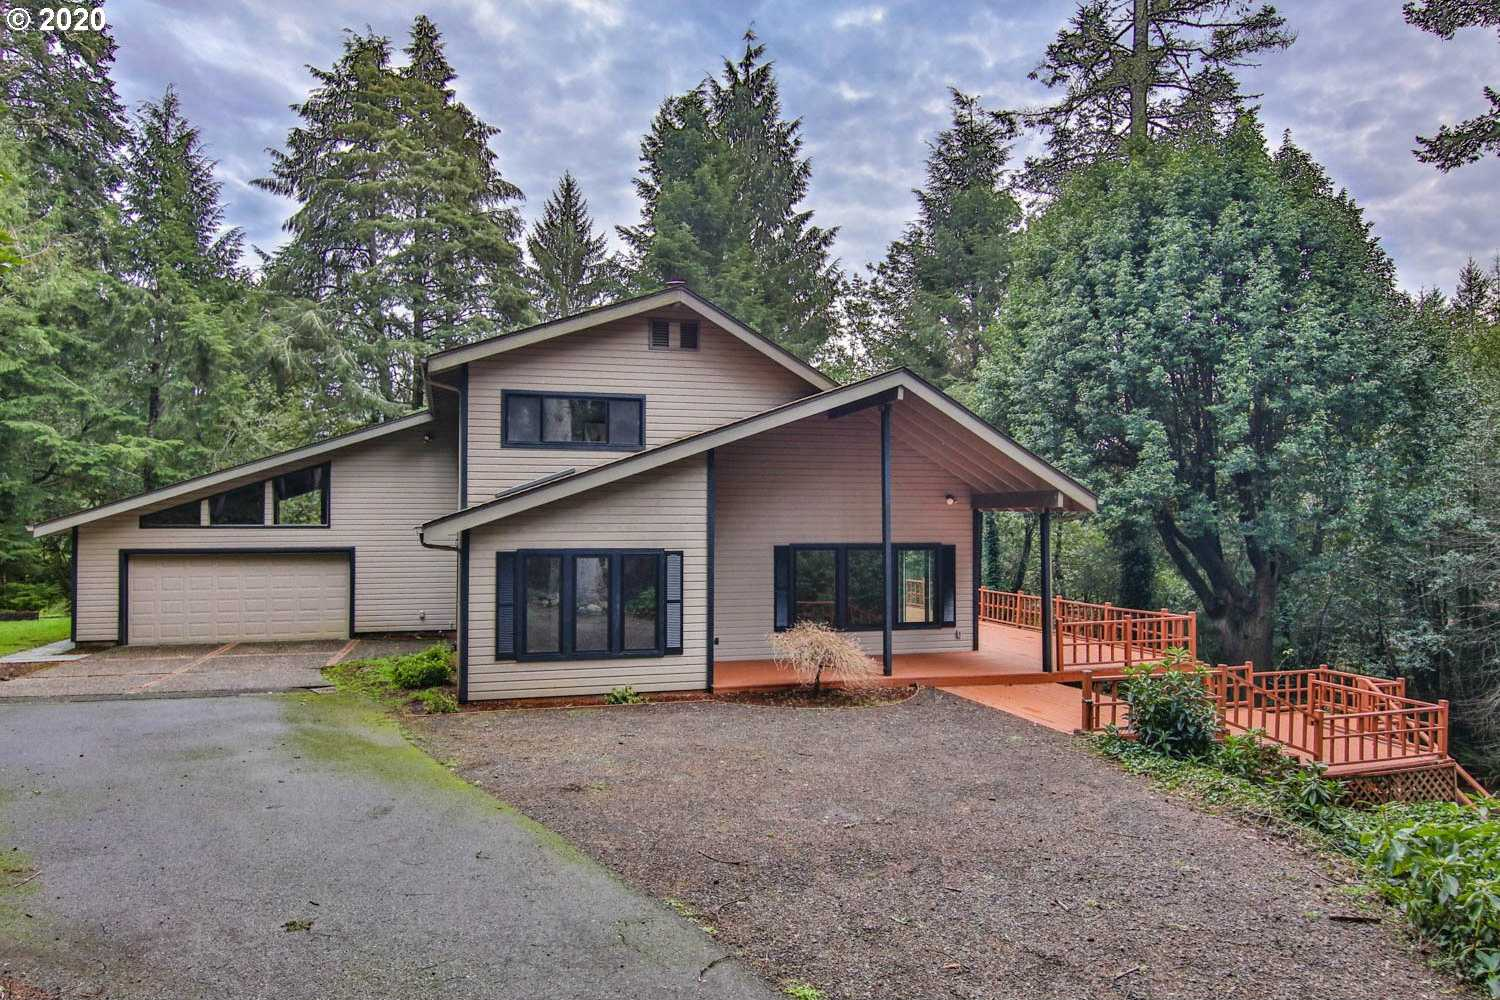 $425,000 - 3Br/3Ba -  for Sale in Coos Bay